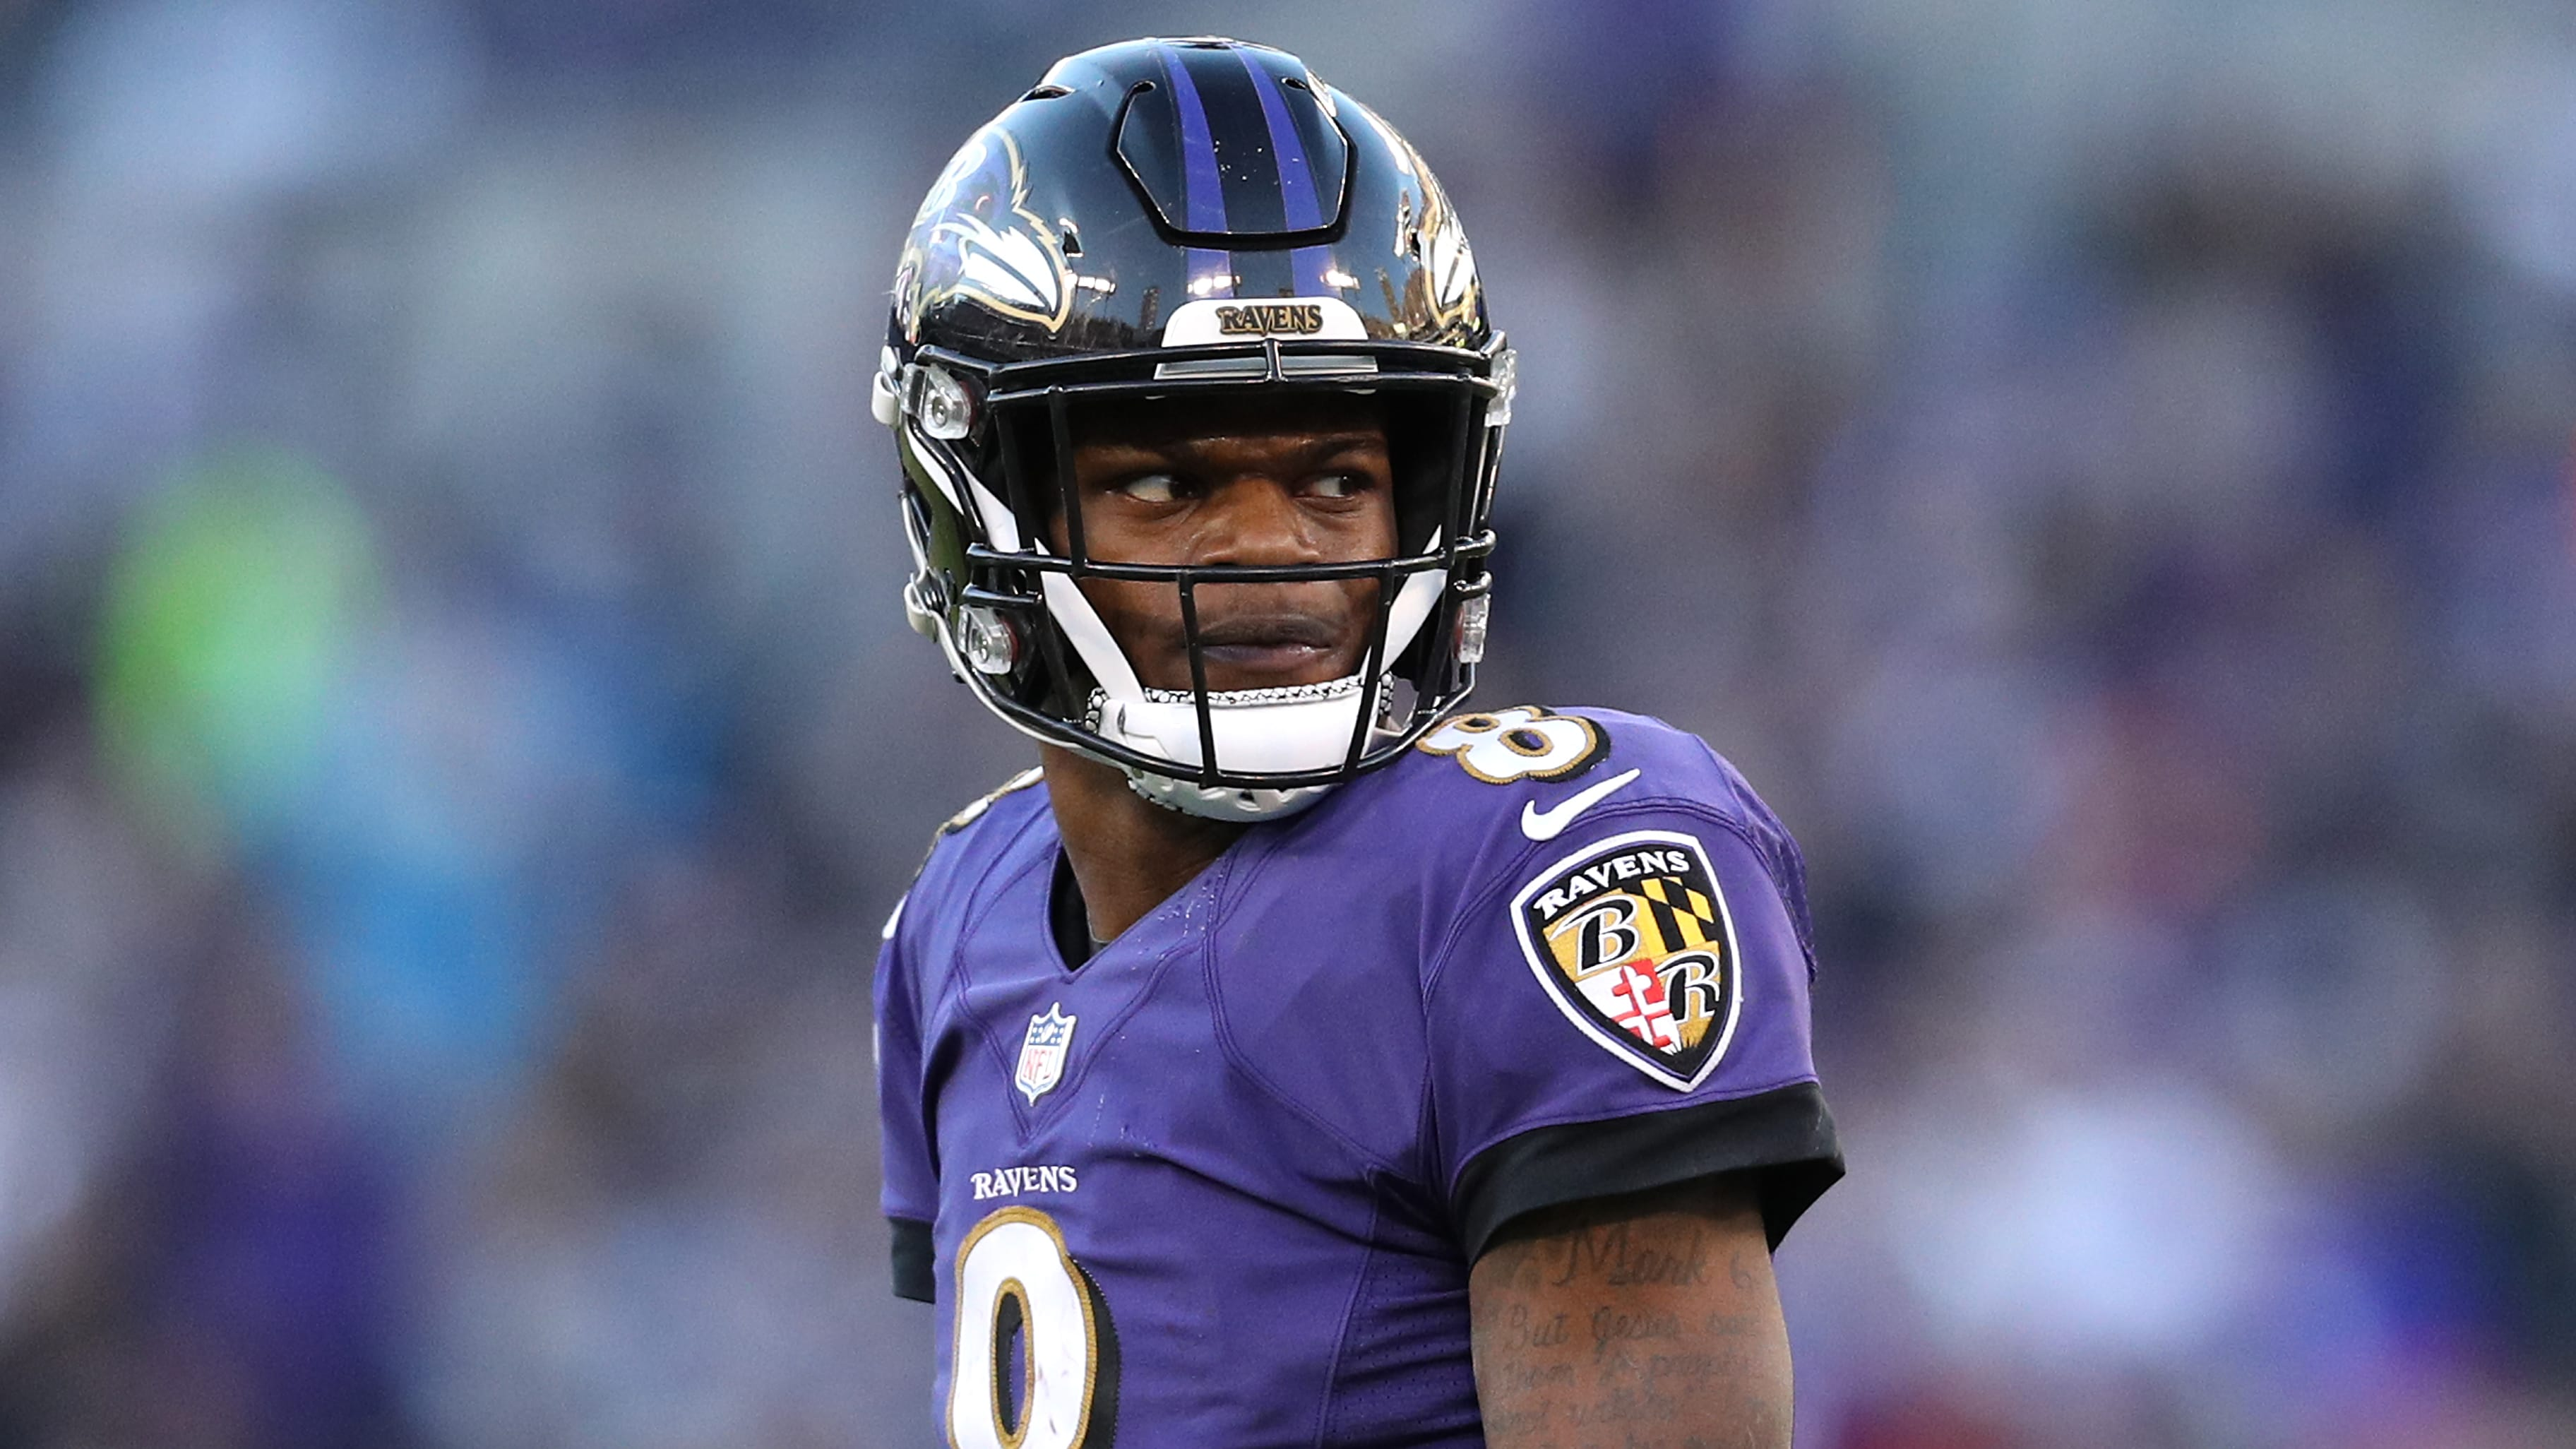 BALTIMORE, MARYLAND - JANUARY 06: Quarterback Lamar Jackson #8 of the Baltimore Ravens in action against the Los Angeles Chargers during the AFC Wild Card Playoff game at M&T Bank Stadium on January 06, 2019 in Baltimore, Maryland. (Photo by Patrick Smith/Getty Images)